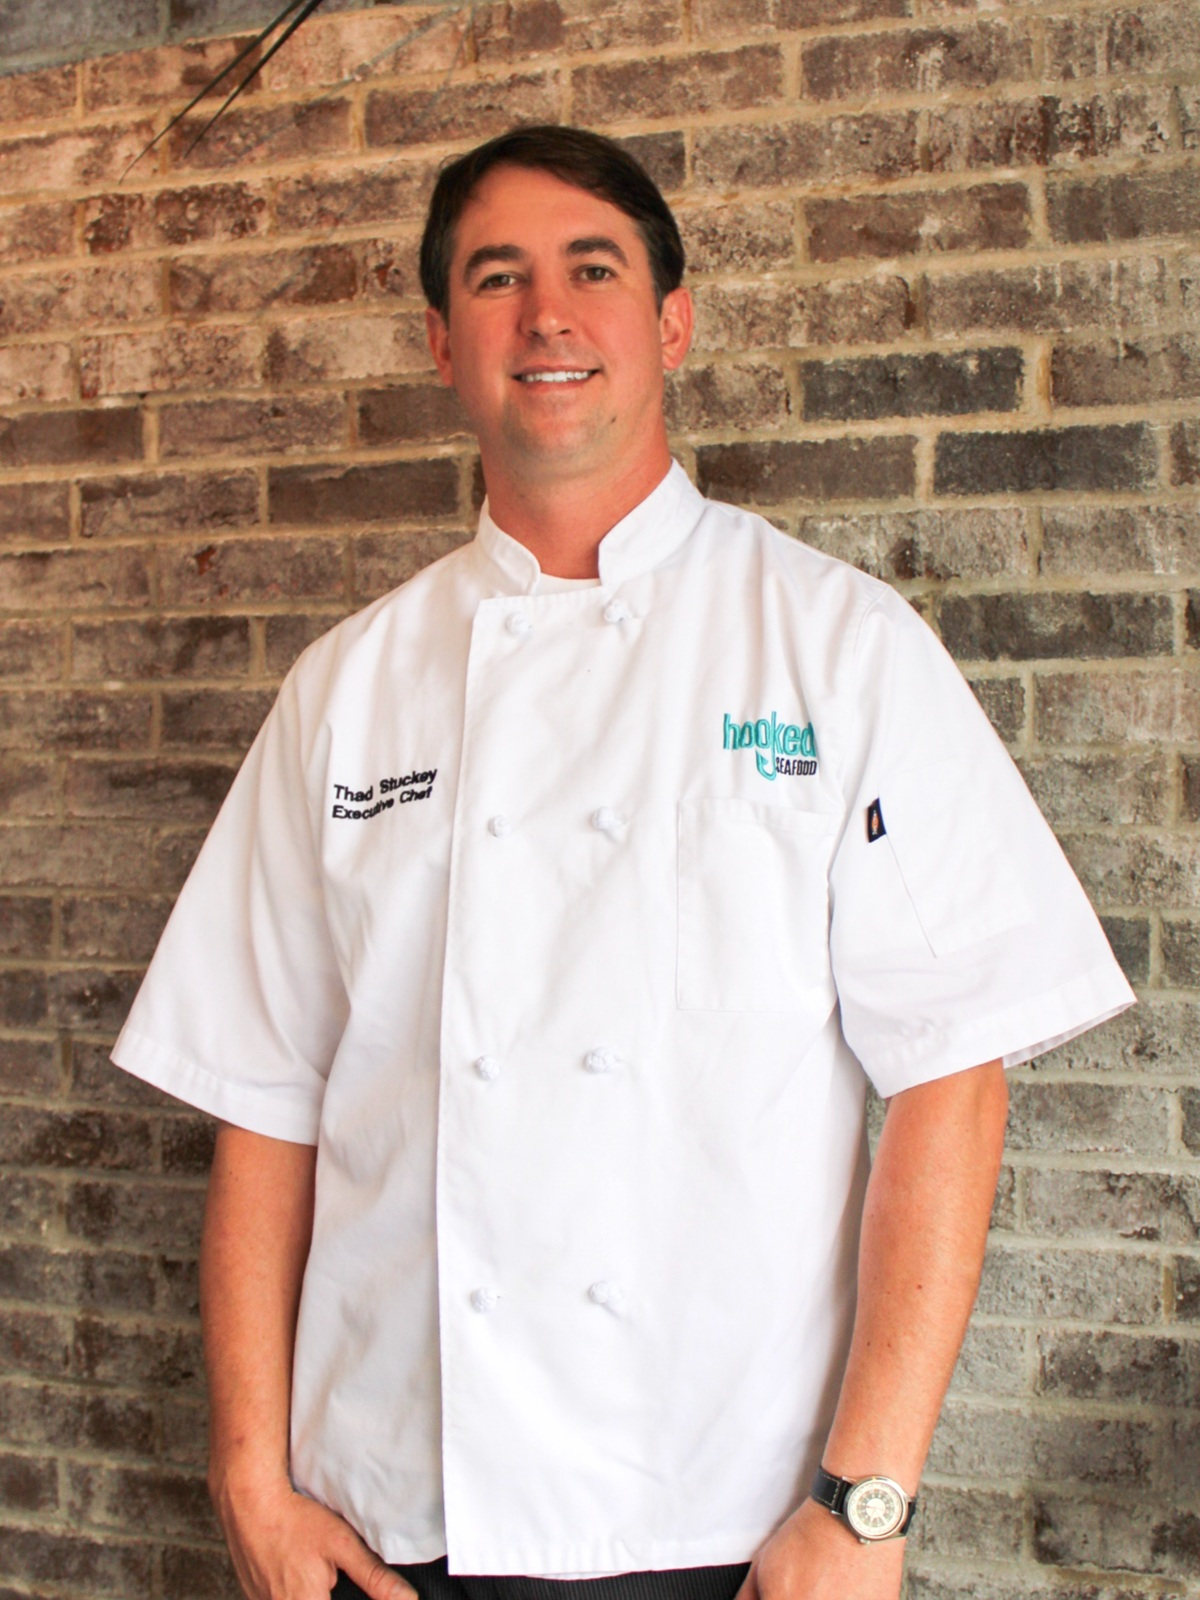 Thad Stuckey - Executive Chef Thad Stuckey is excited to bring his unique blend of culinary talents to Hooked in Downtown Charleston. From Spanish Tapas to Sushi, Chef Stuckey has spent 18 years cultivating his skills here in Charleston. His love of culinary culture stems from a youth growing up all over the world, traveling and living in Asia, Europe, and North America. He looks forward to welcoming diners interested in celebrating the bounty of Charleston in a contemporary setting with modern approaches.